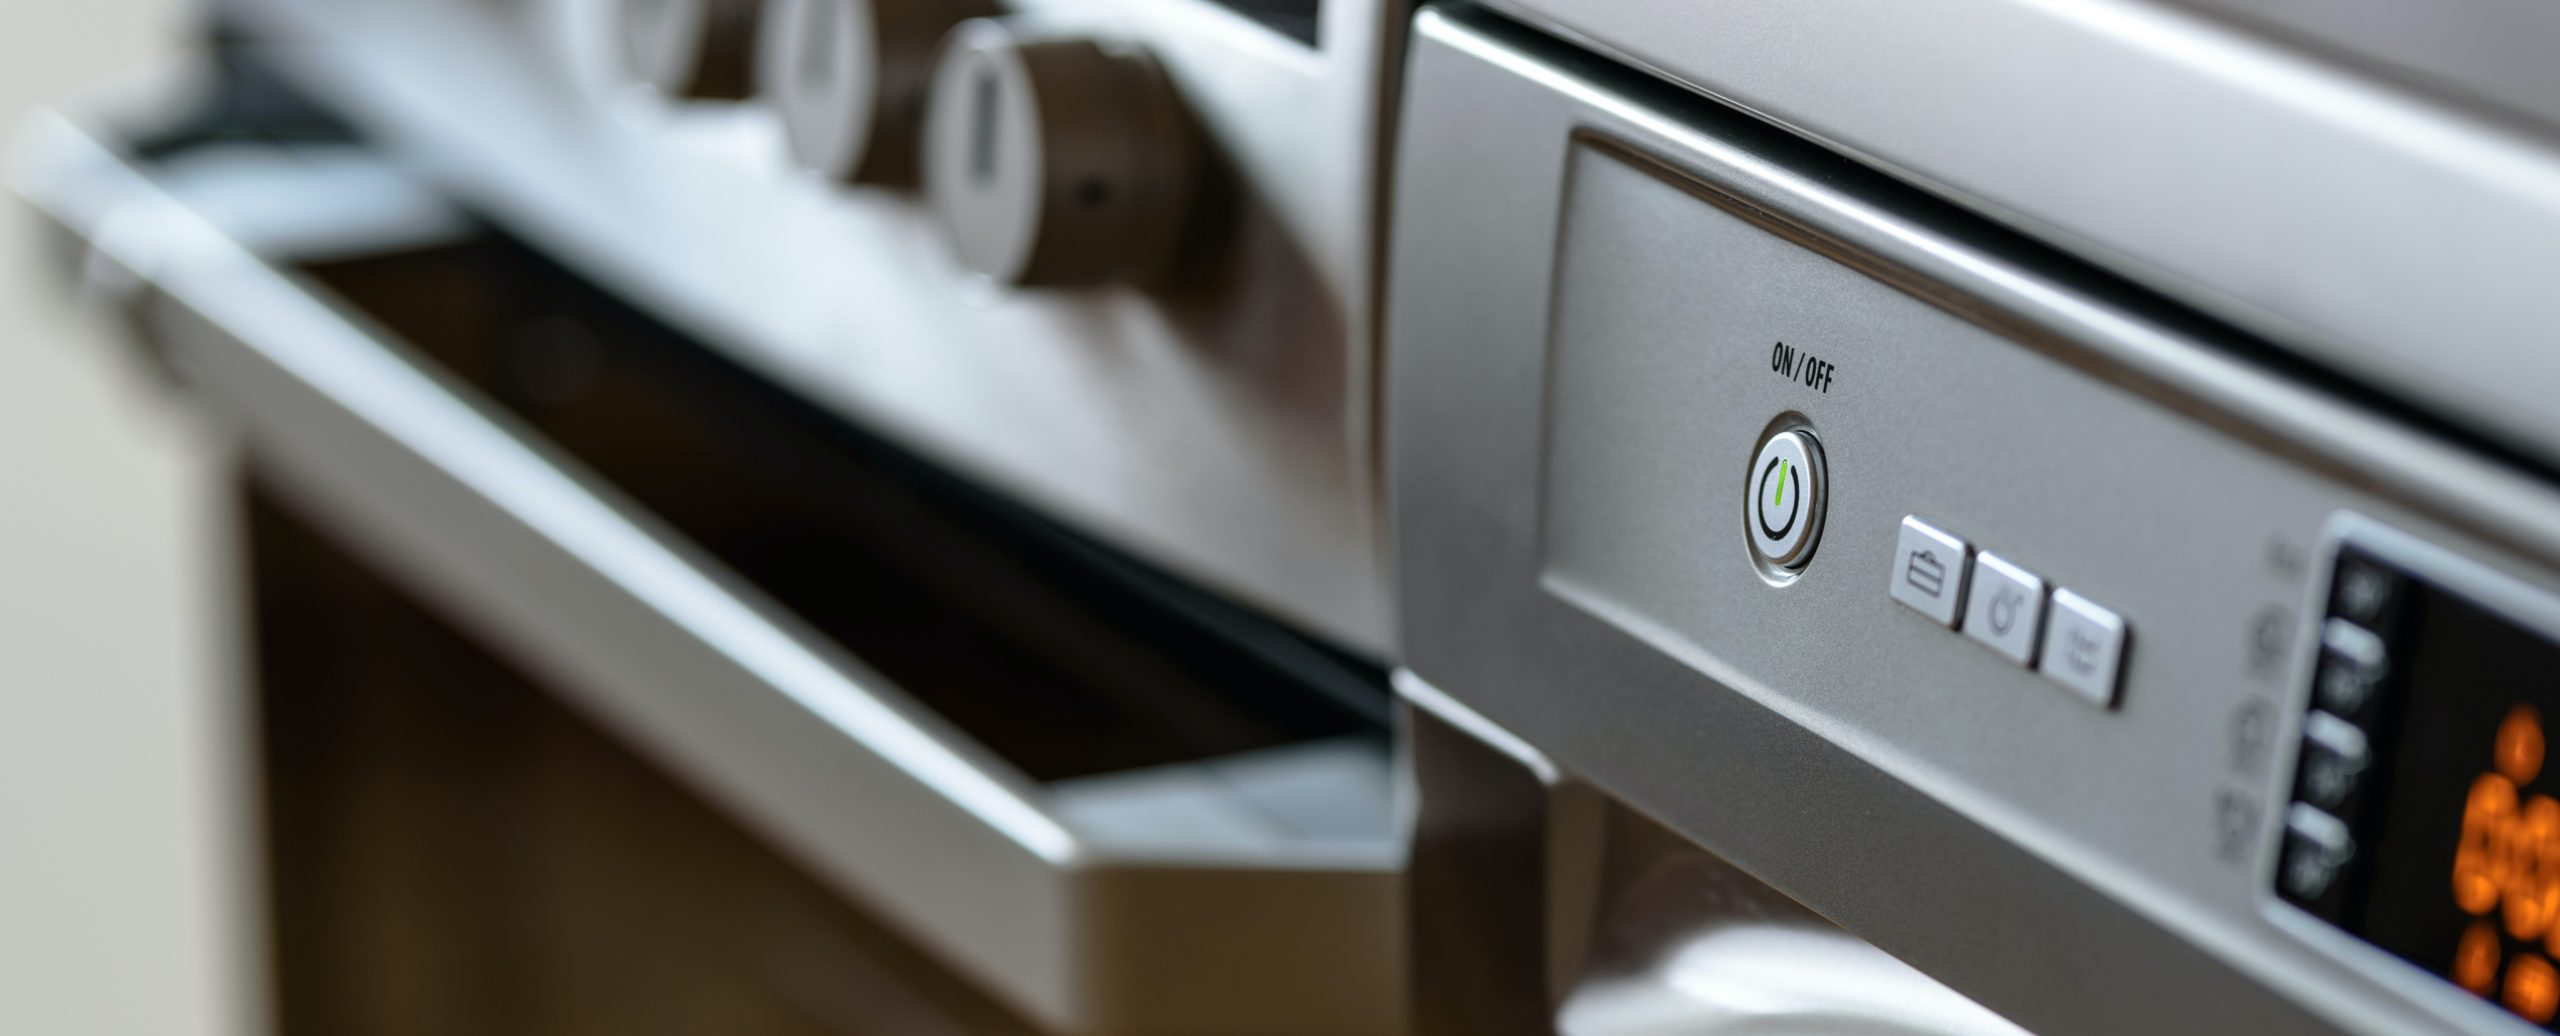 Amazon appliance brands can take advantage of pandemic buying